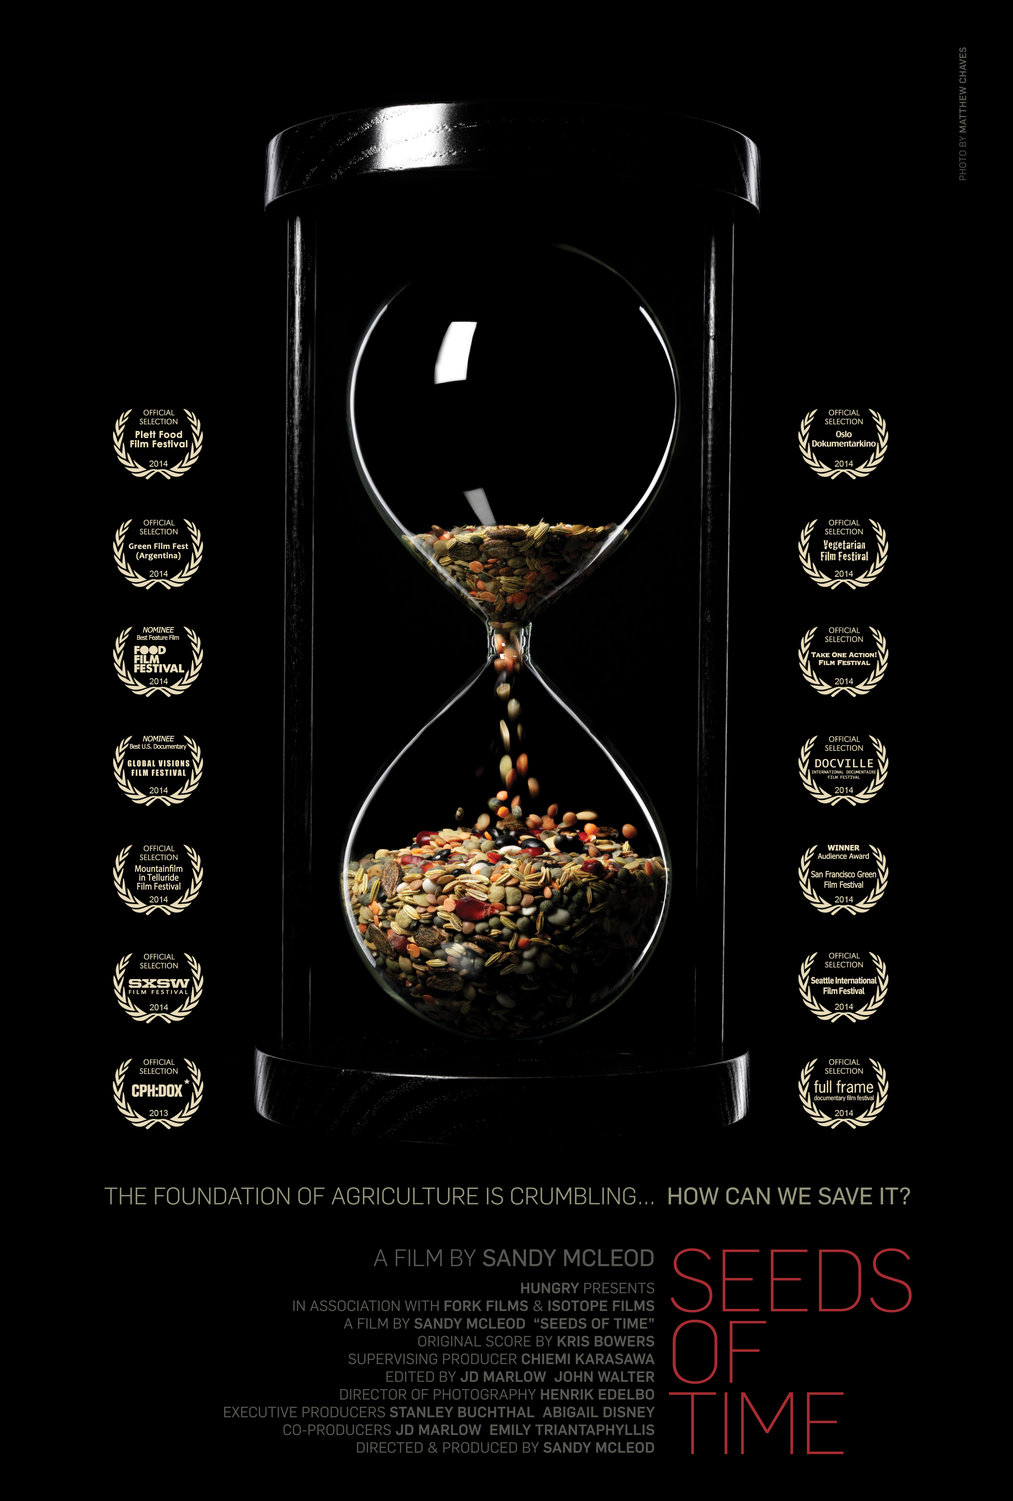 poster for the movie Seeds of Time, with a center image of an hourglass timer filled with grains instead of the expected sand